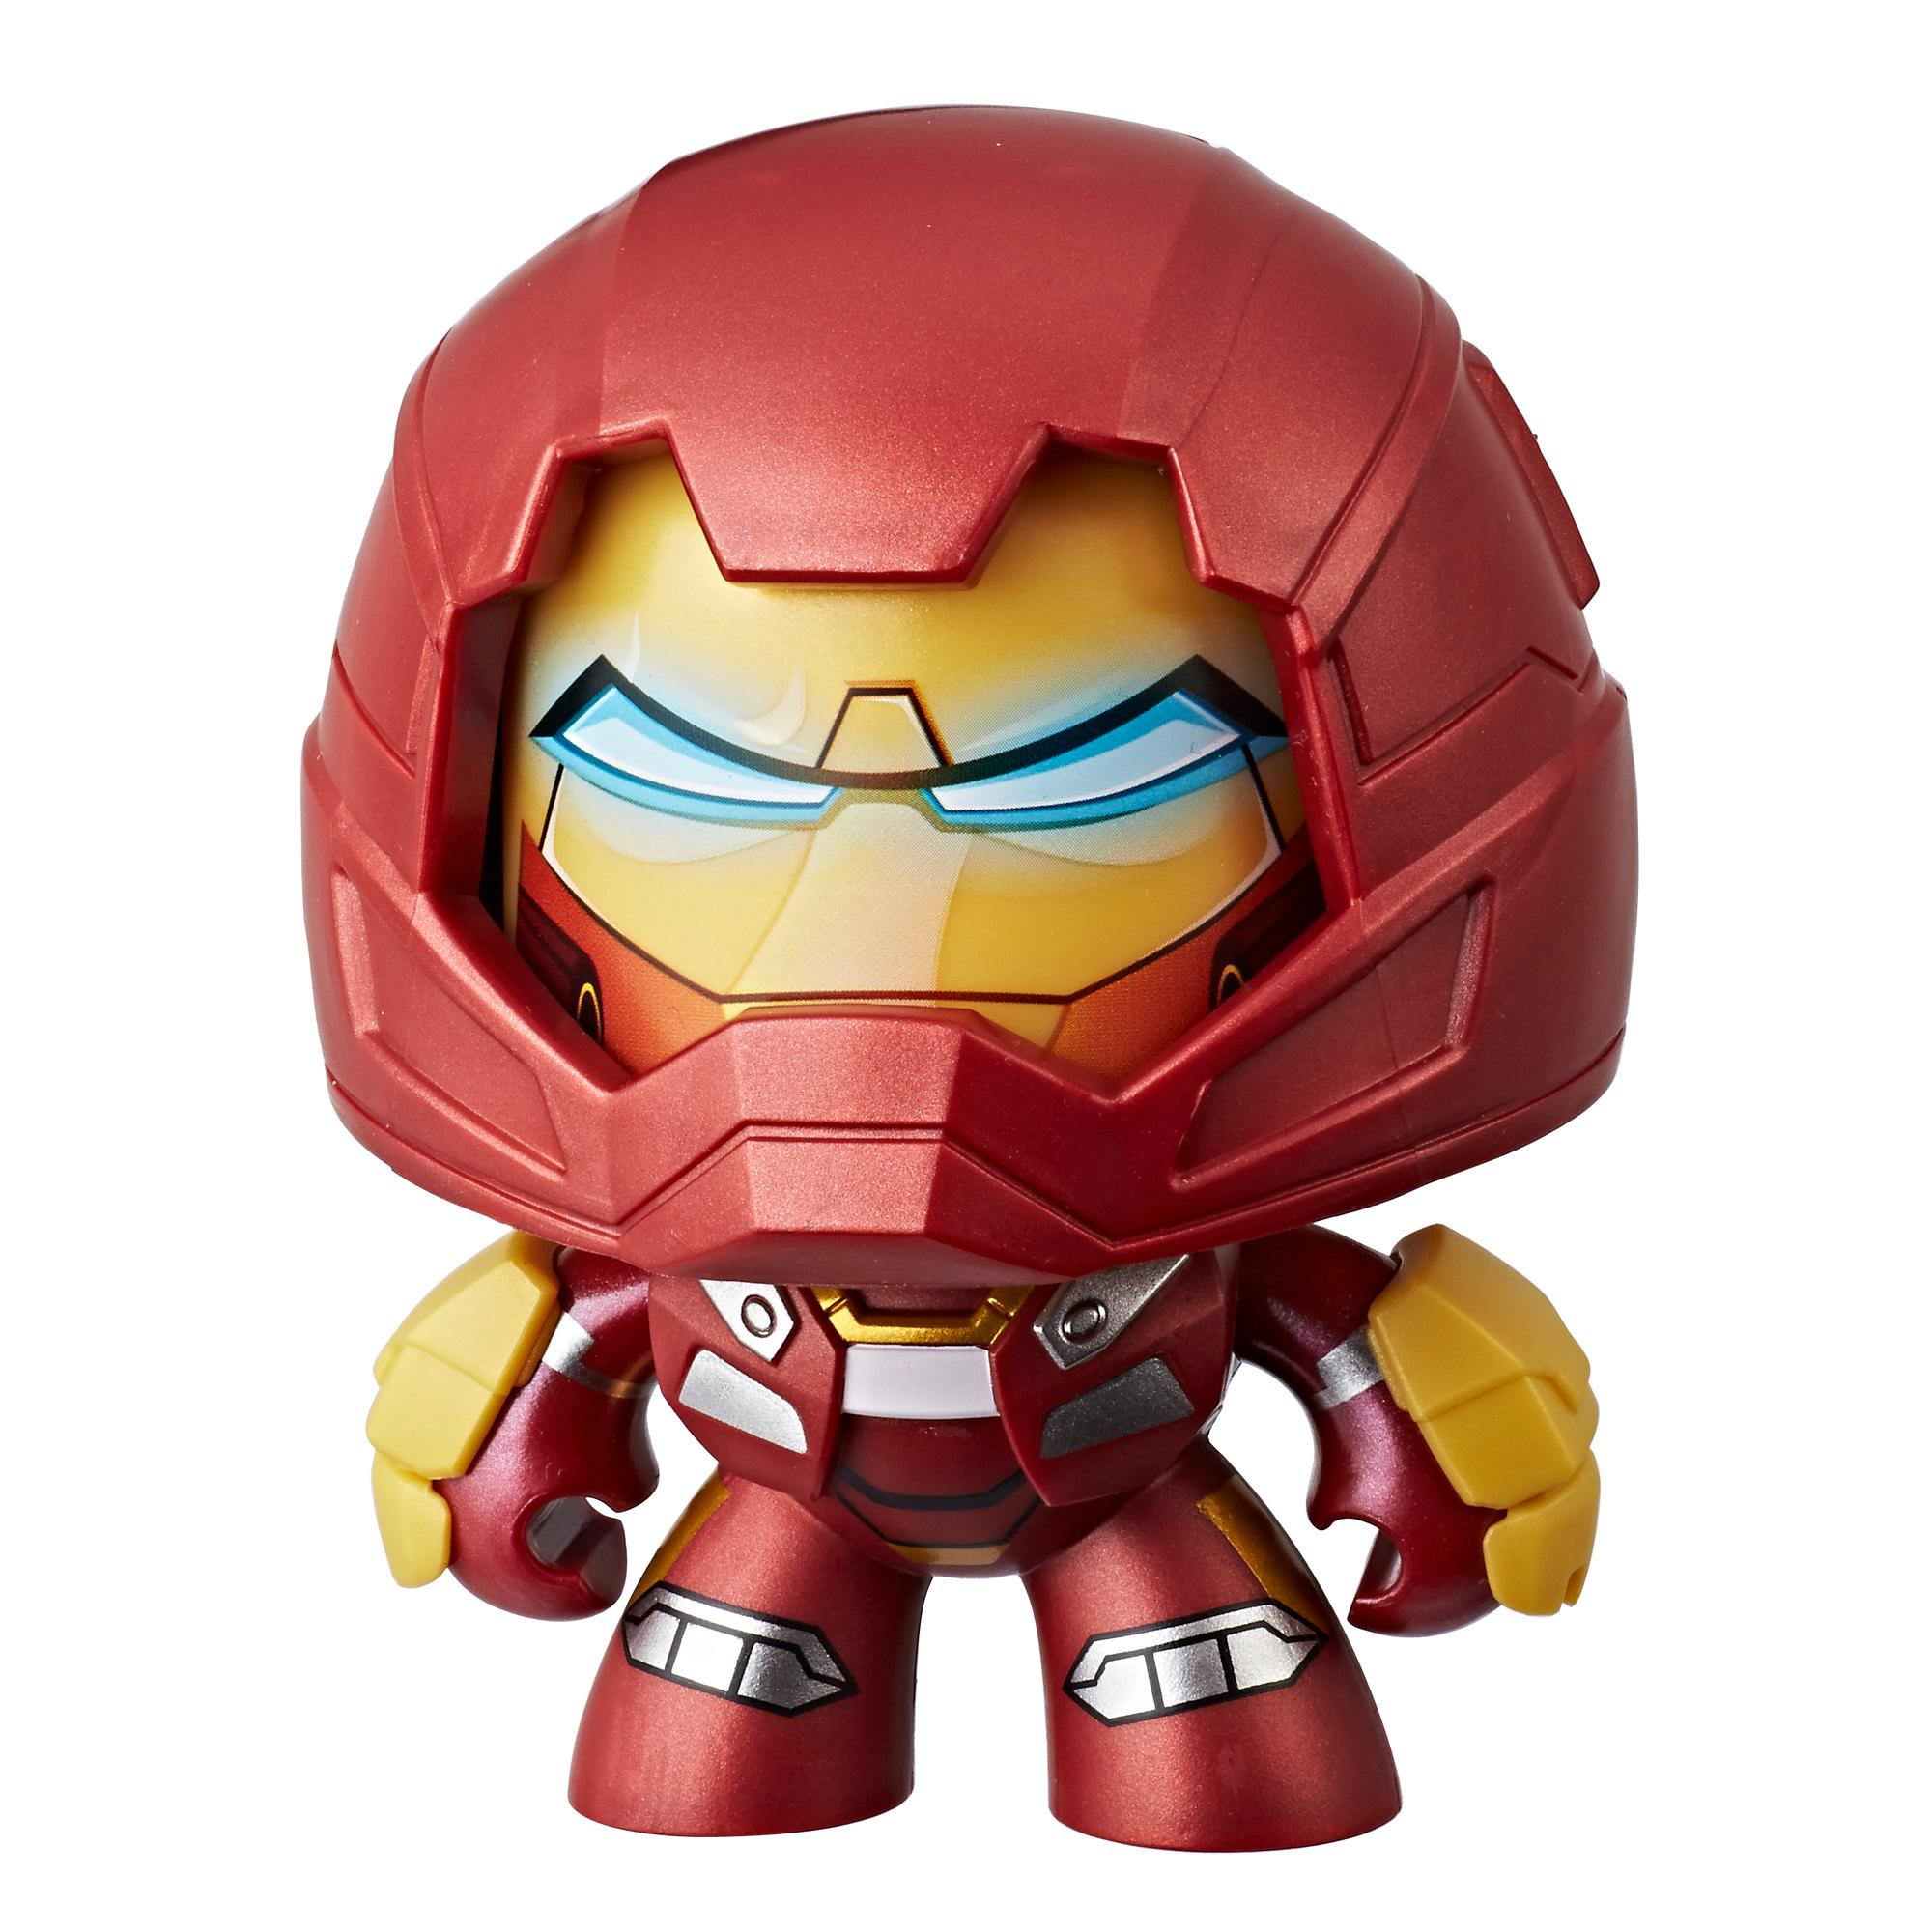 Marvel Mighty Muggs - Hulkbuster no 18